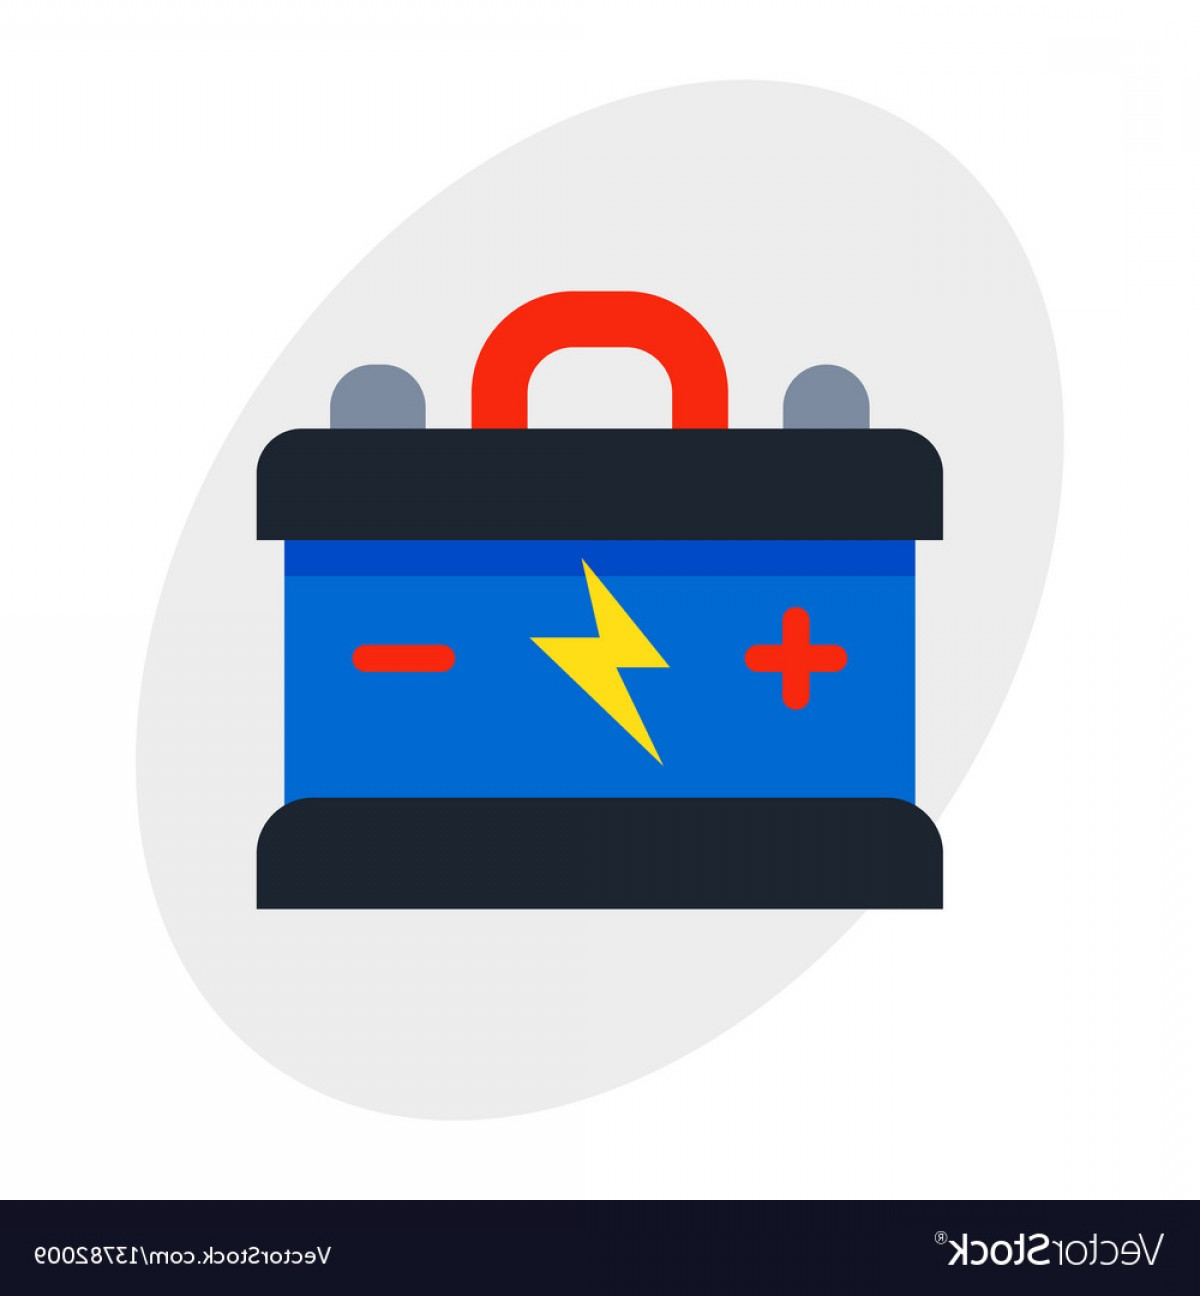 Battery Electricity Vector Images: Accumulator Battery Energy Power And Electricity Vector